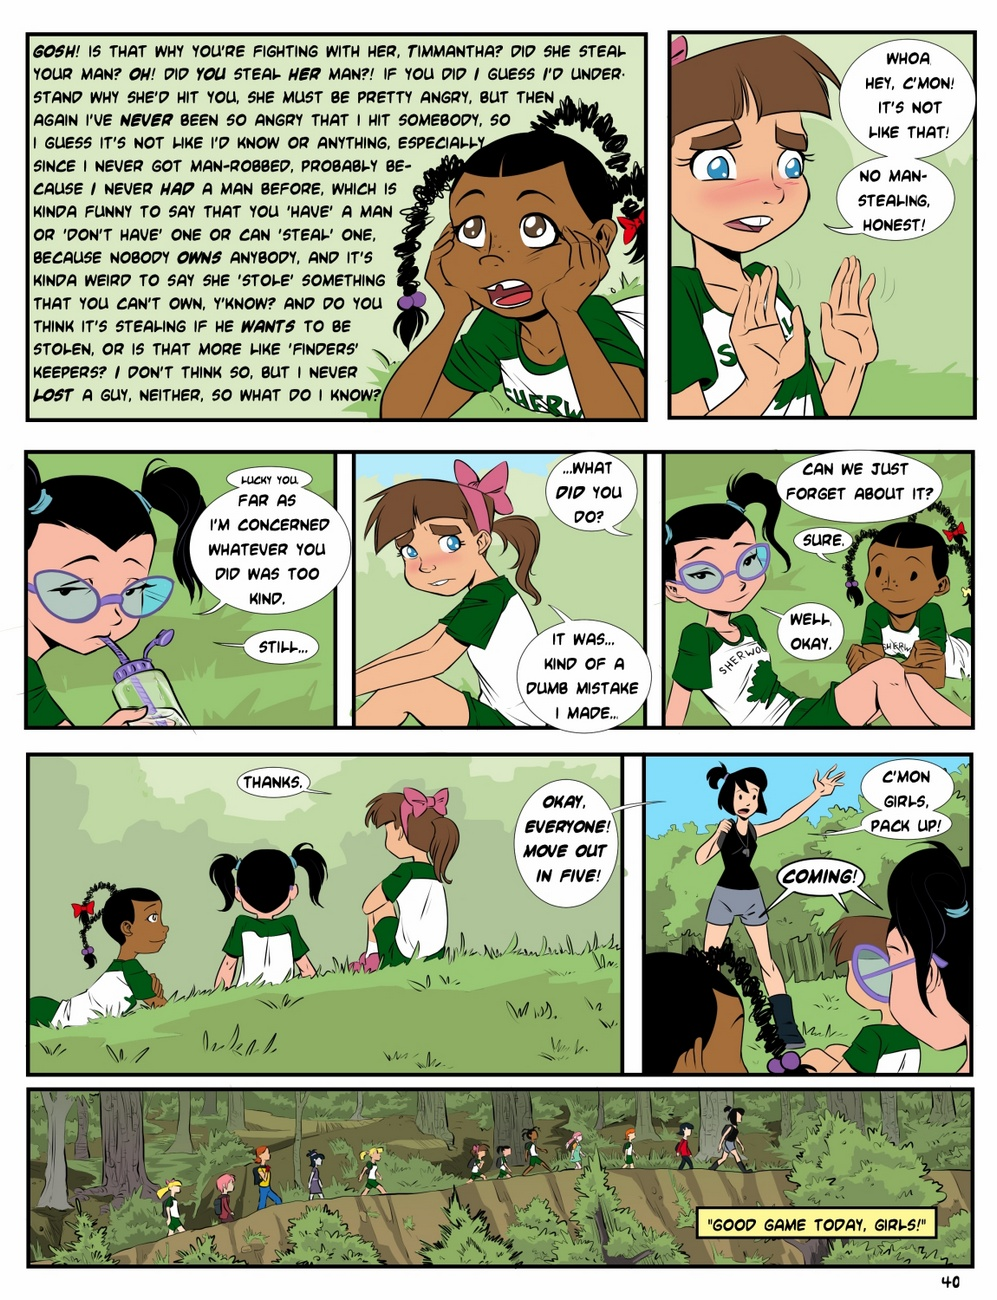 Camp Sherwood [Mr.D] (Ongoing) - part 3